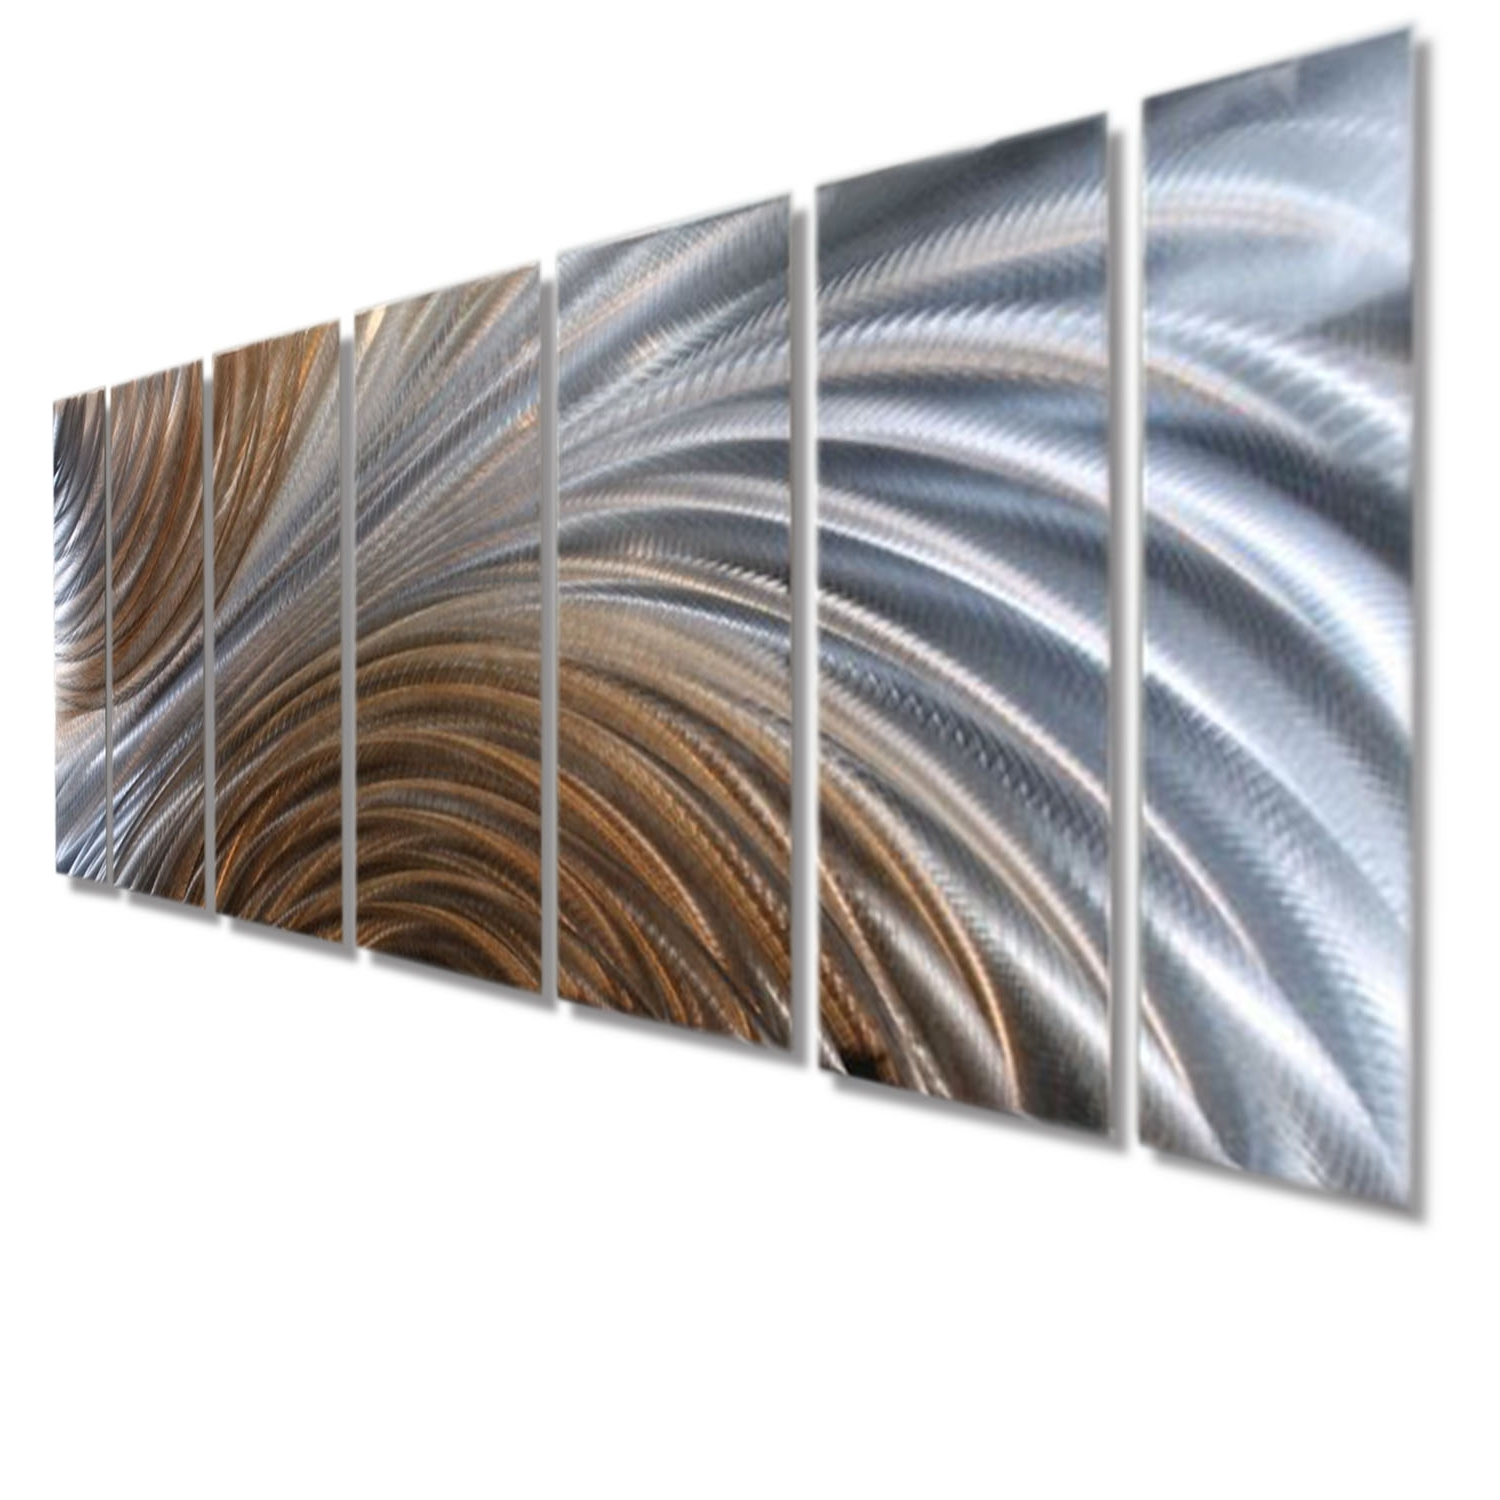 Latest Amber Ascension  Silver & Copper Abstract Metal Wall Artjon Regarding Large Abstract Metal Wall Art (View 6 of 15)